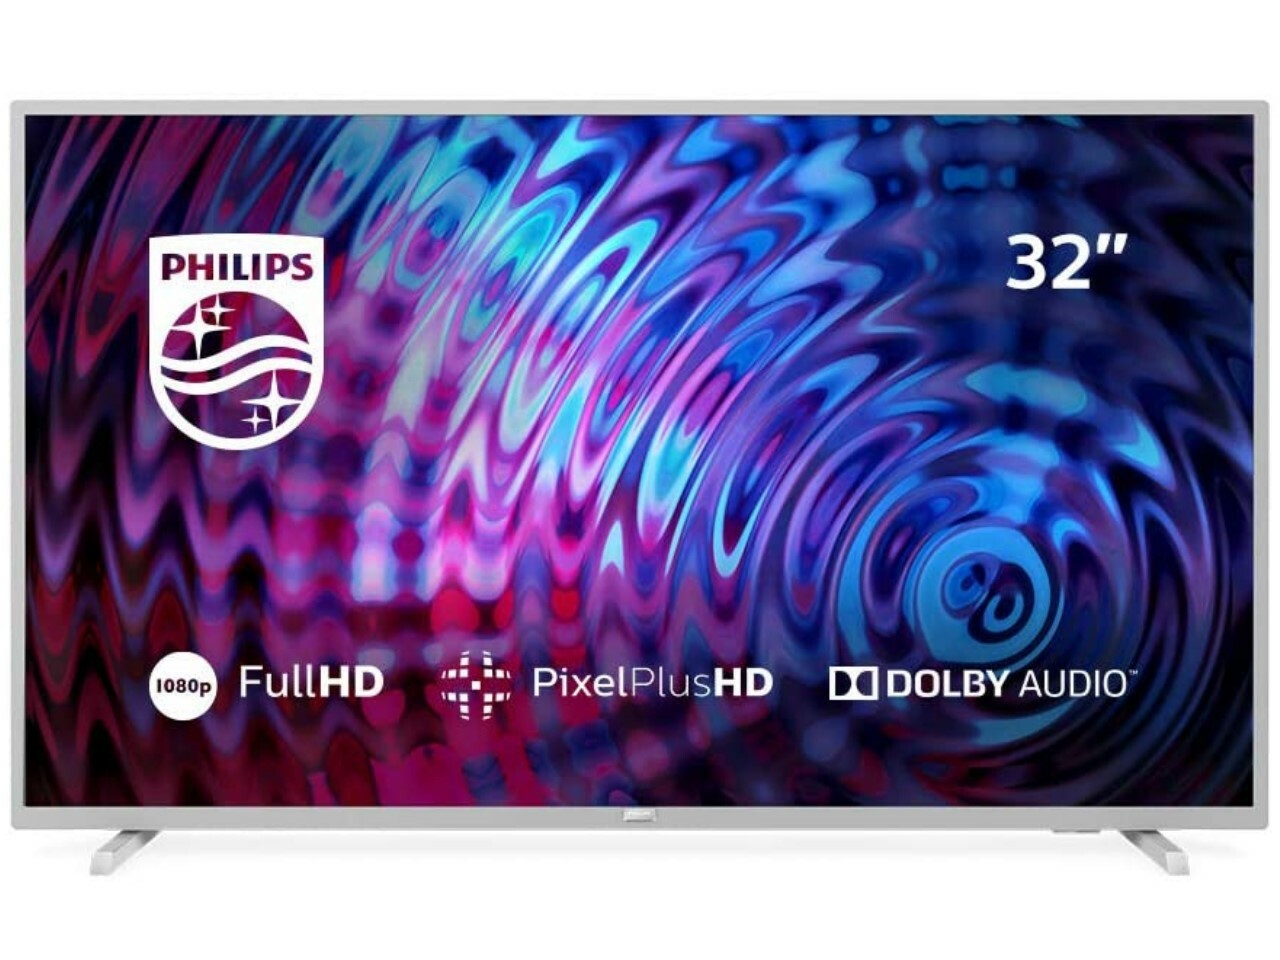 Philips 32PFS5823 frontal